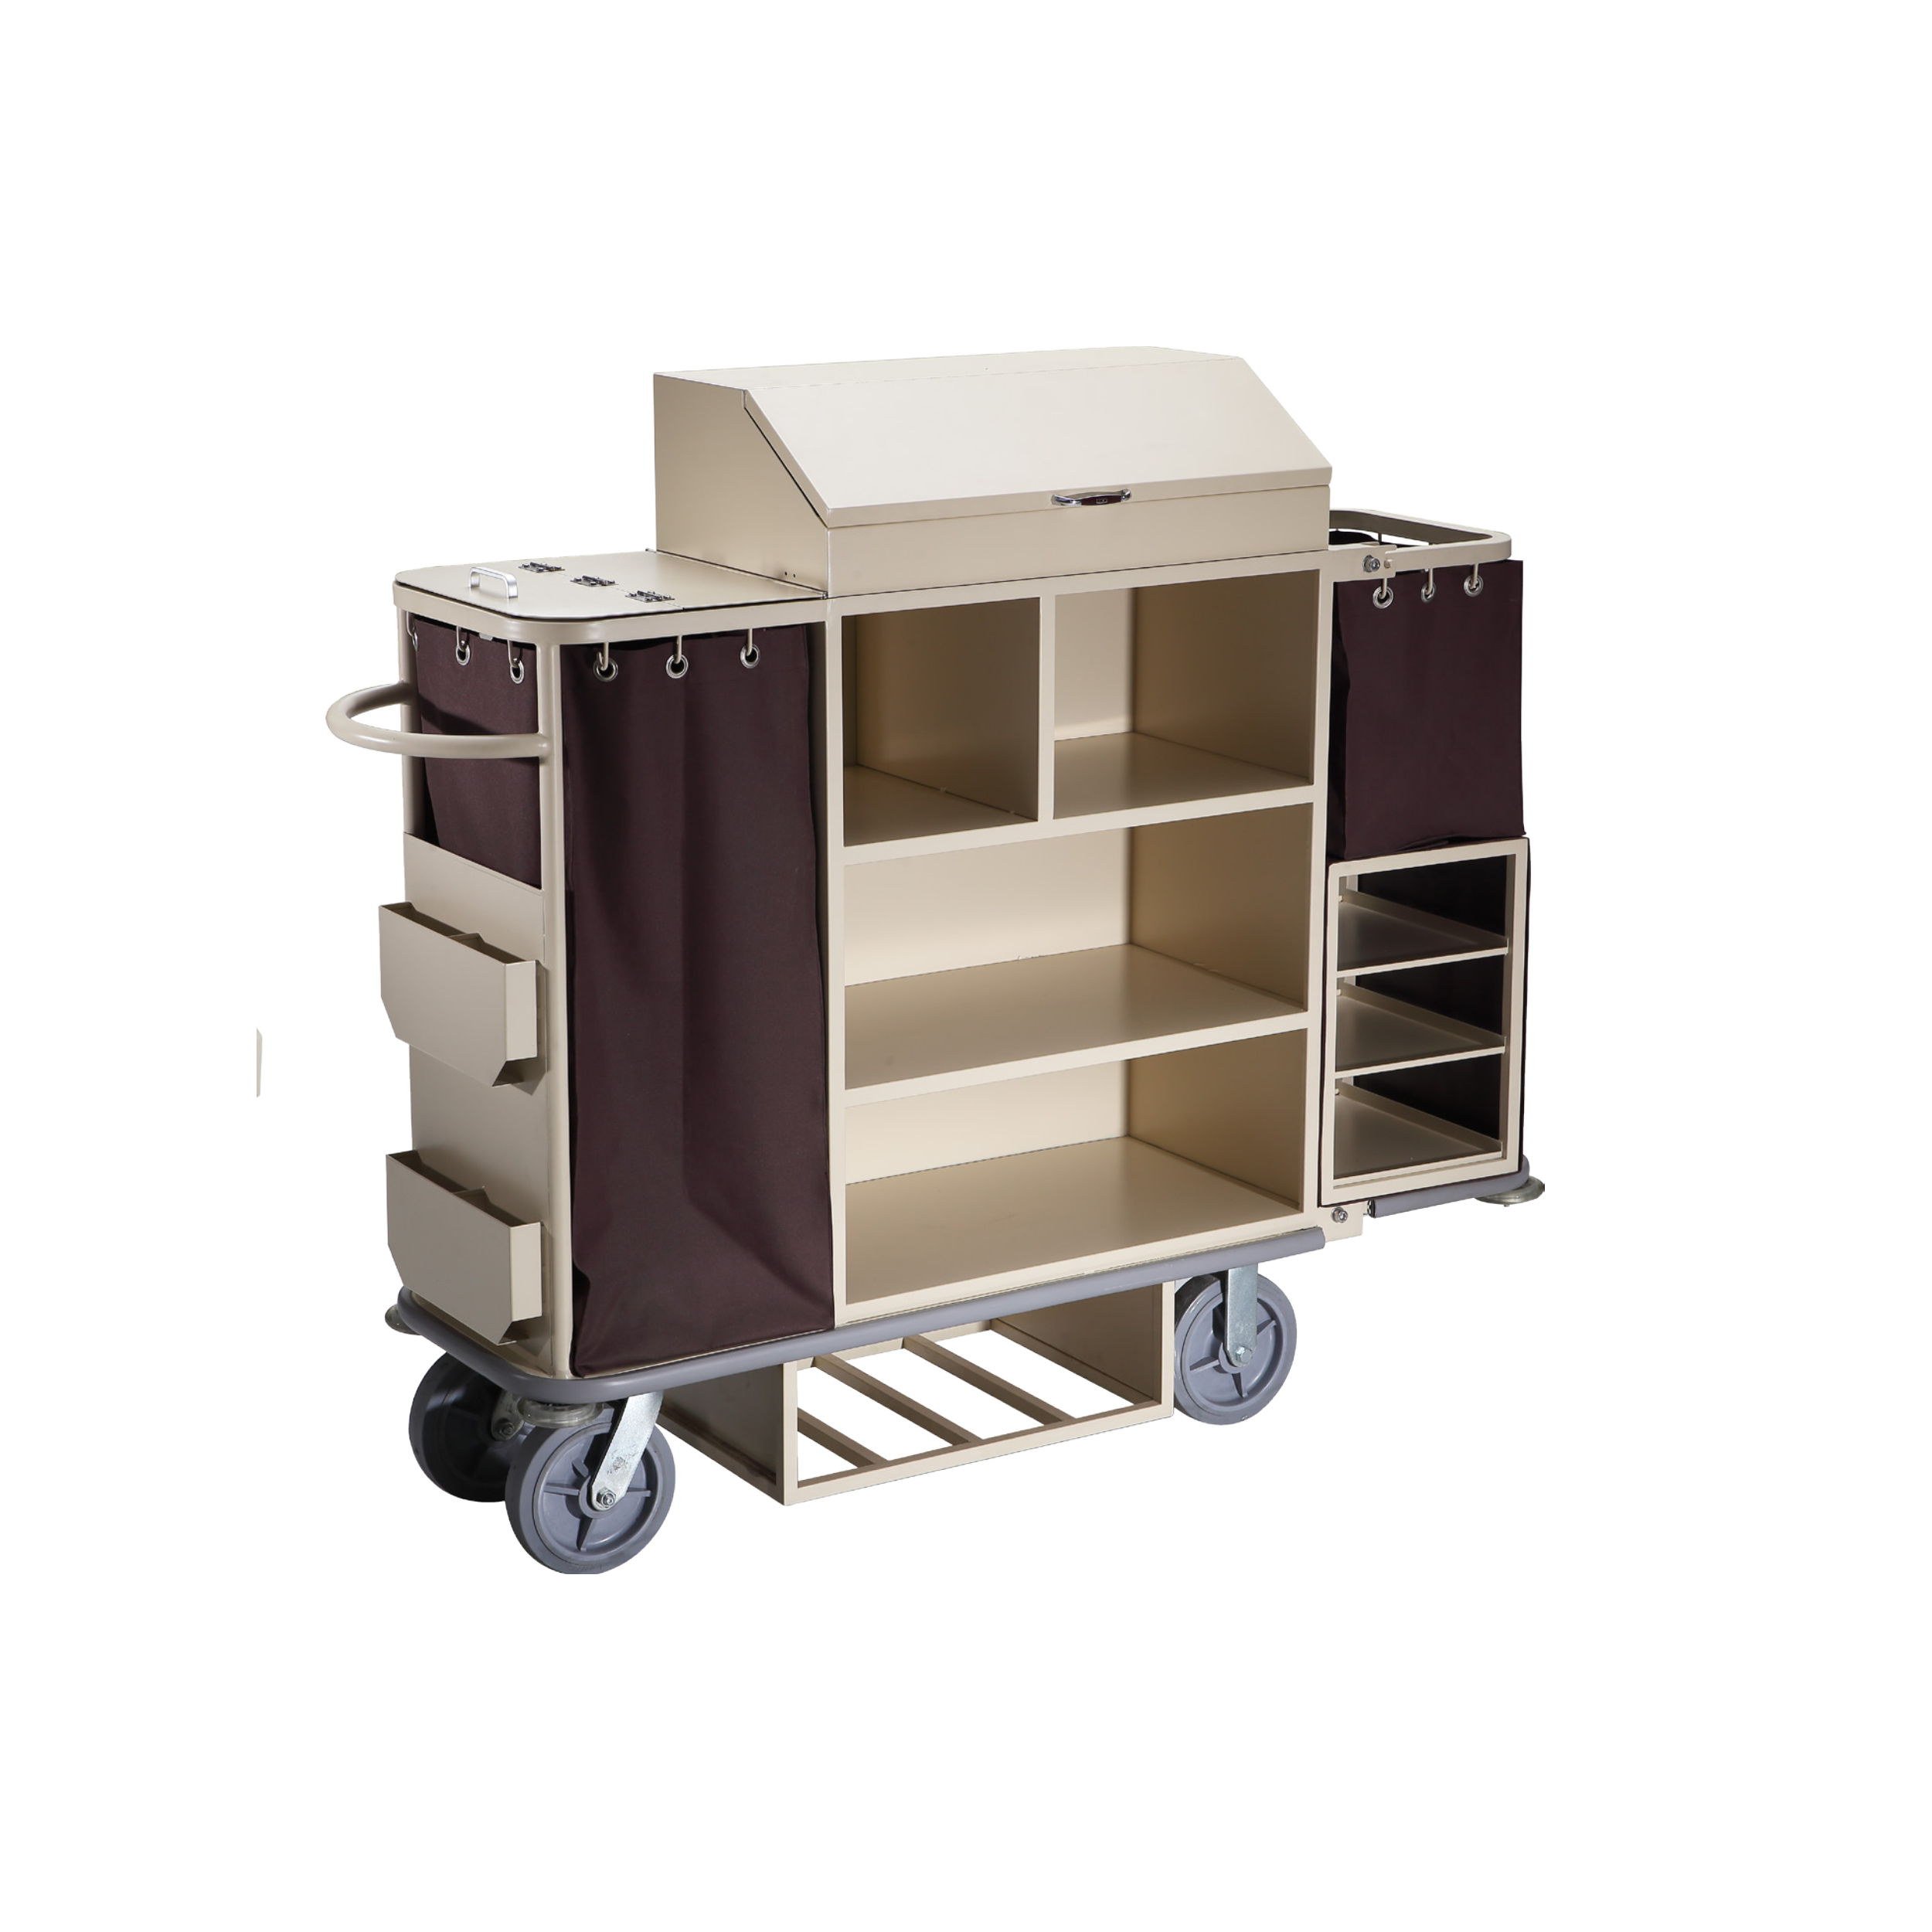 Hotel Restaurant Housekeeping Cleaning Service Trolley